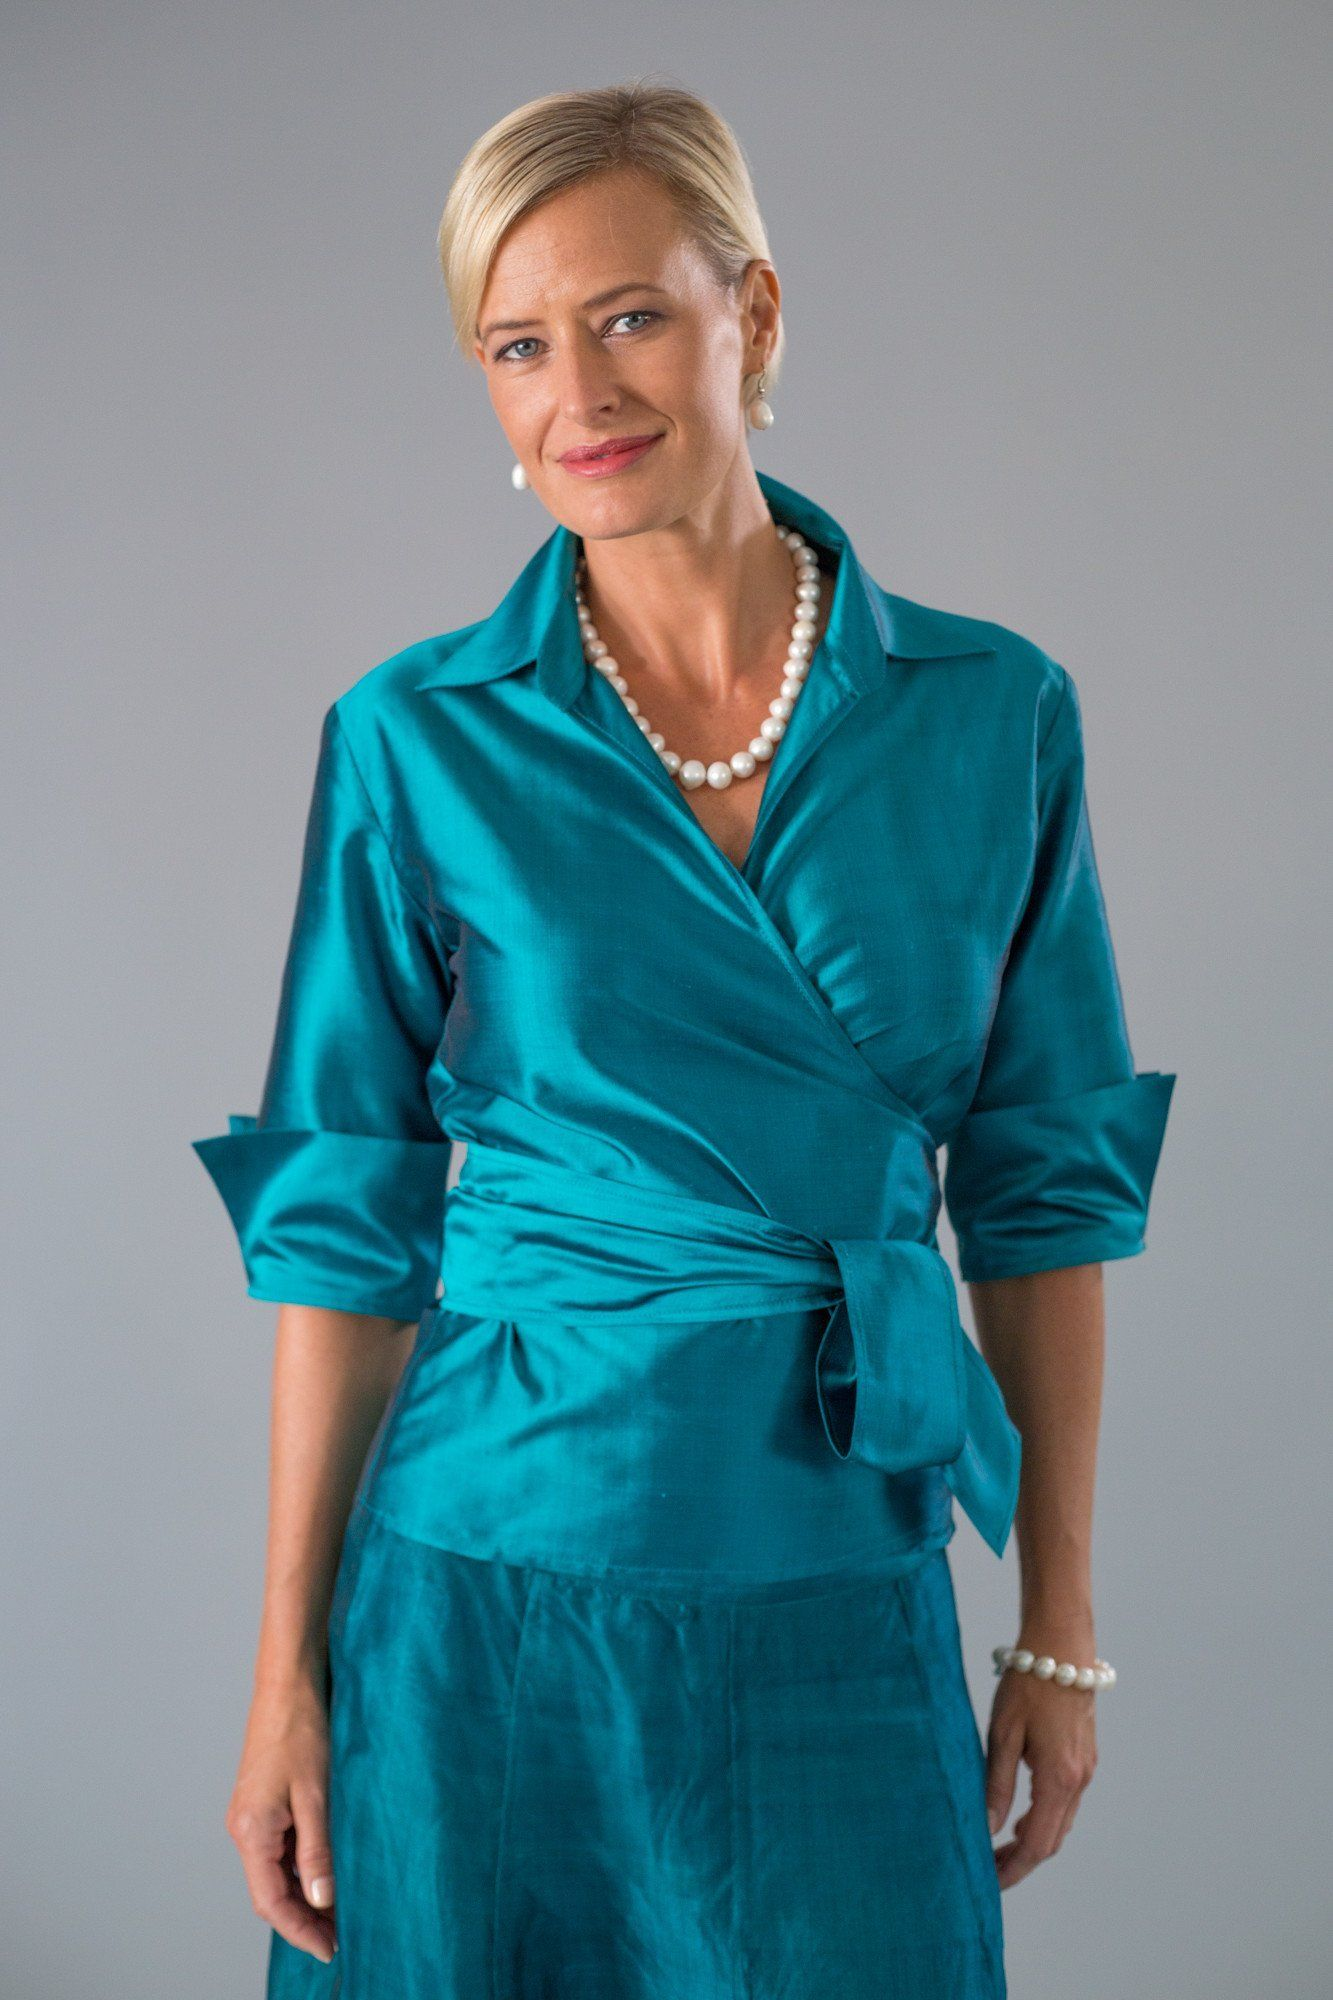 a00012f18d7 Classic Wrap Shirt - Teal in 2019